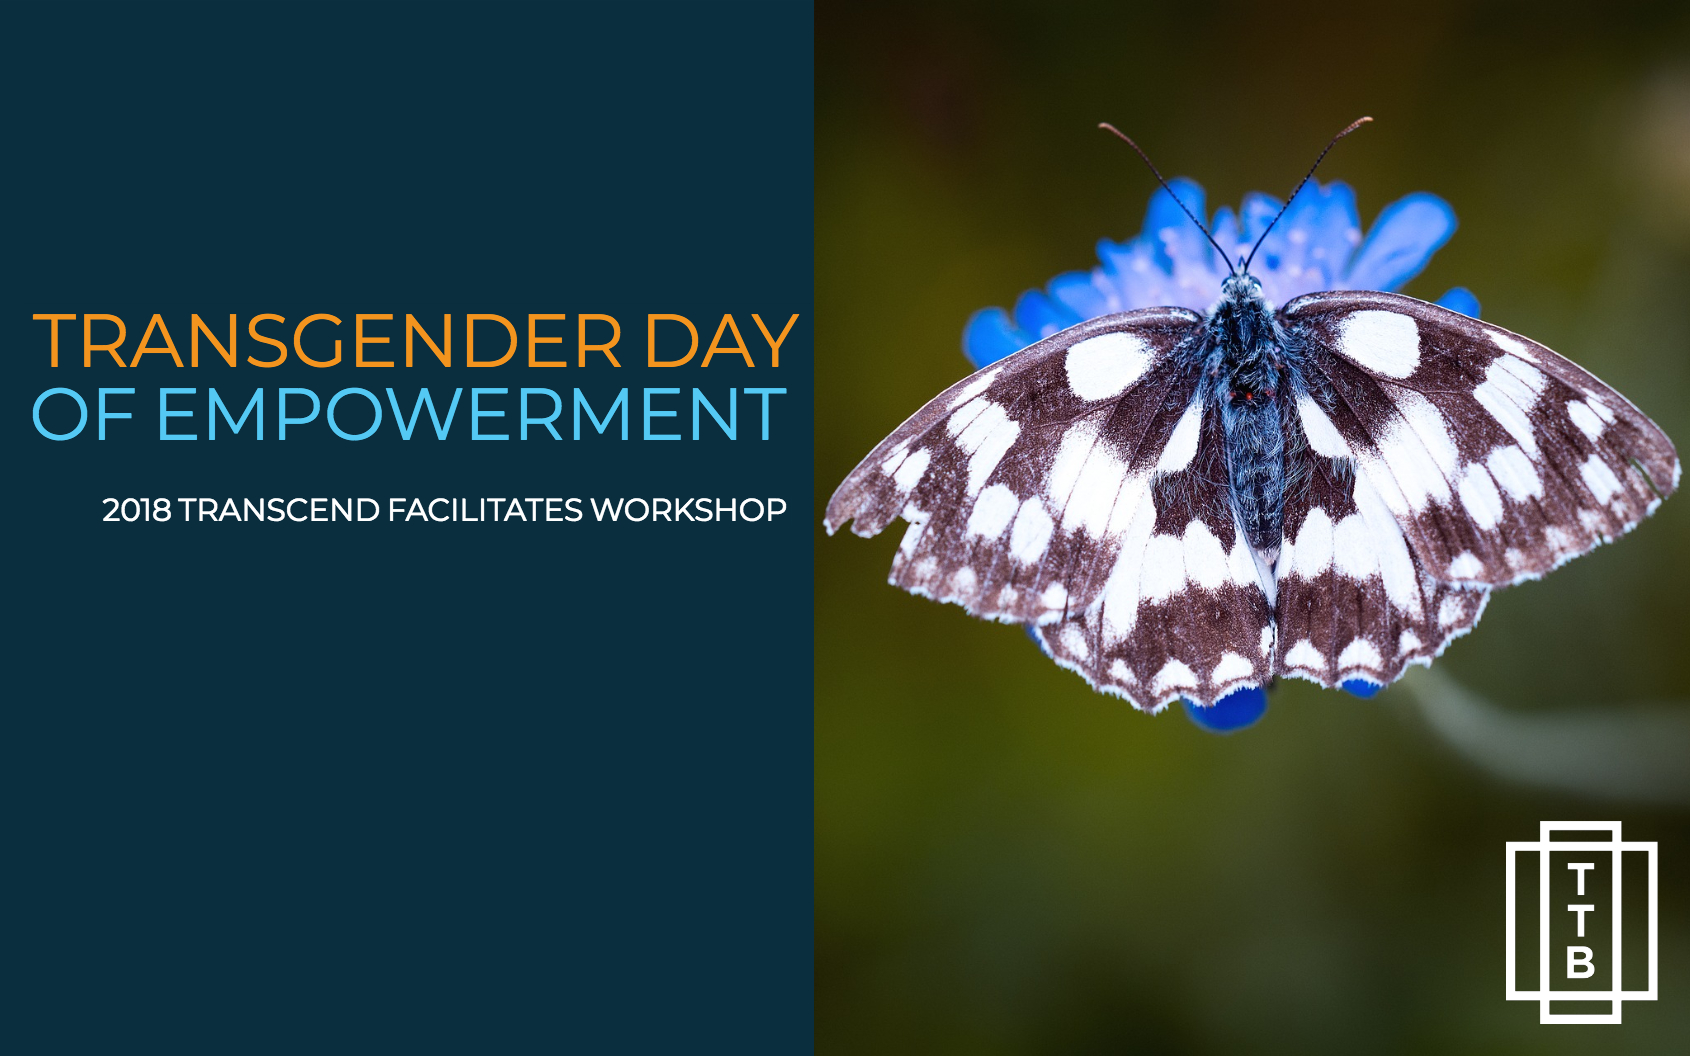 Transgender Day of Empowerment in partnership with Gender Identity Network Alliance